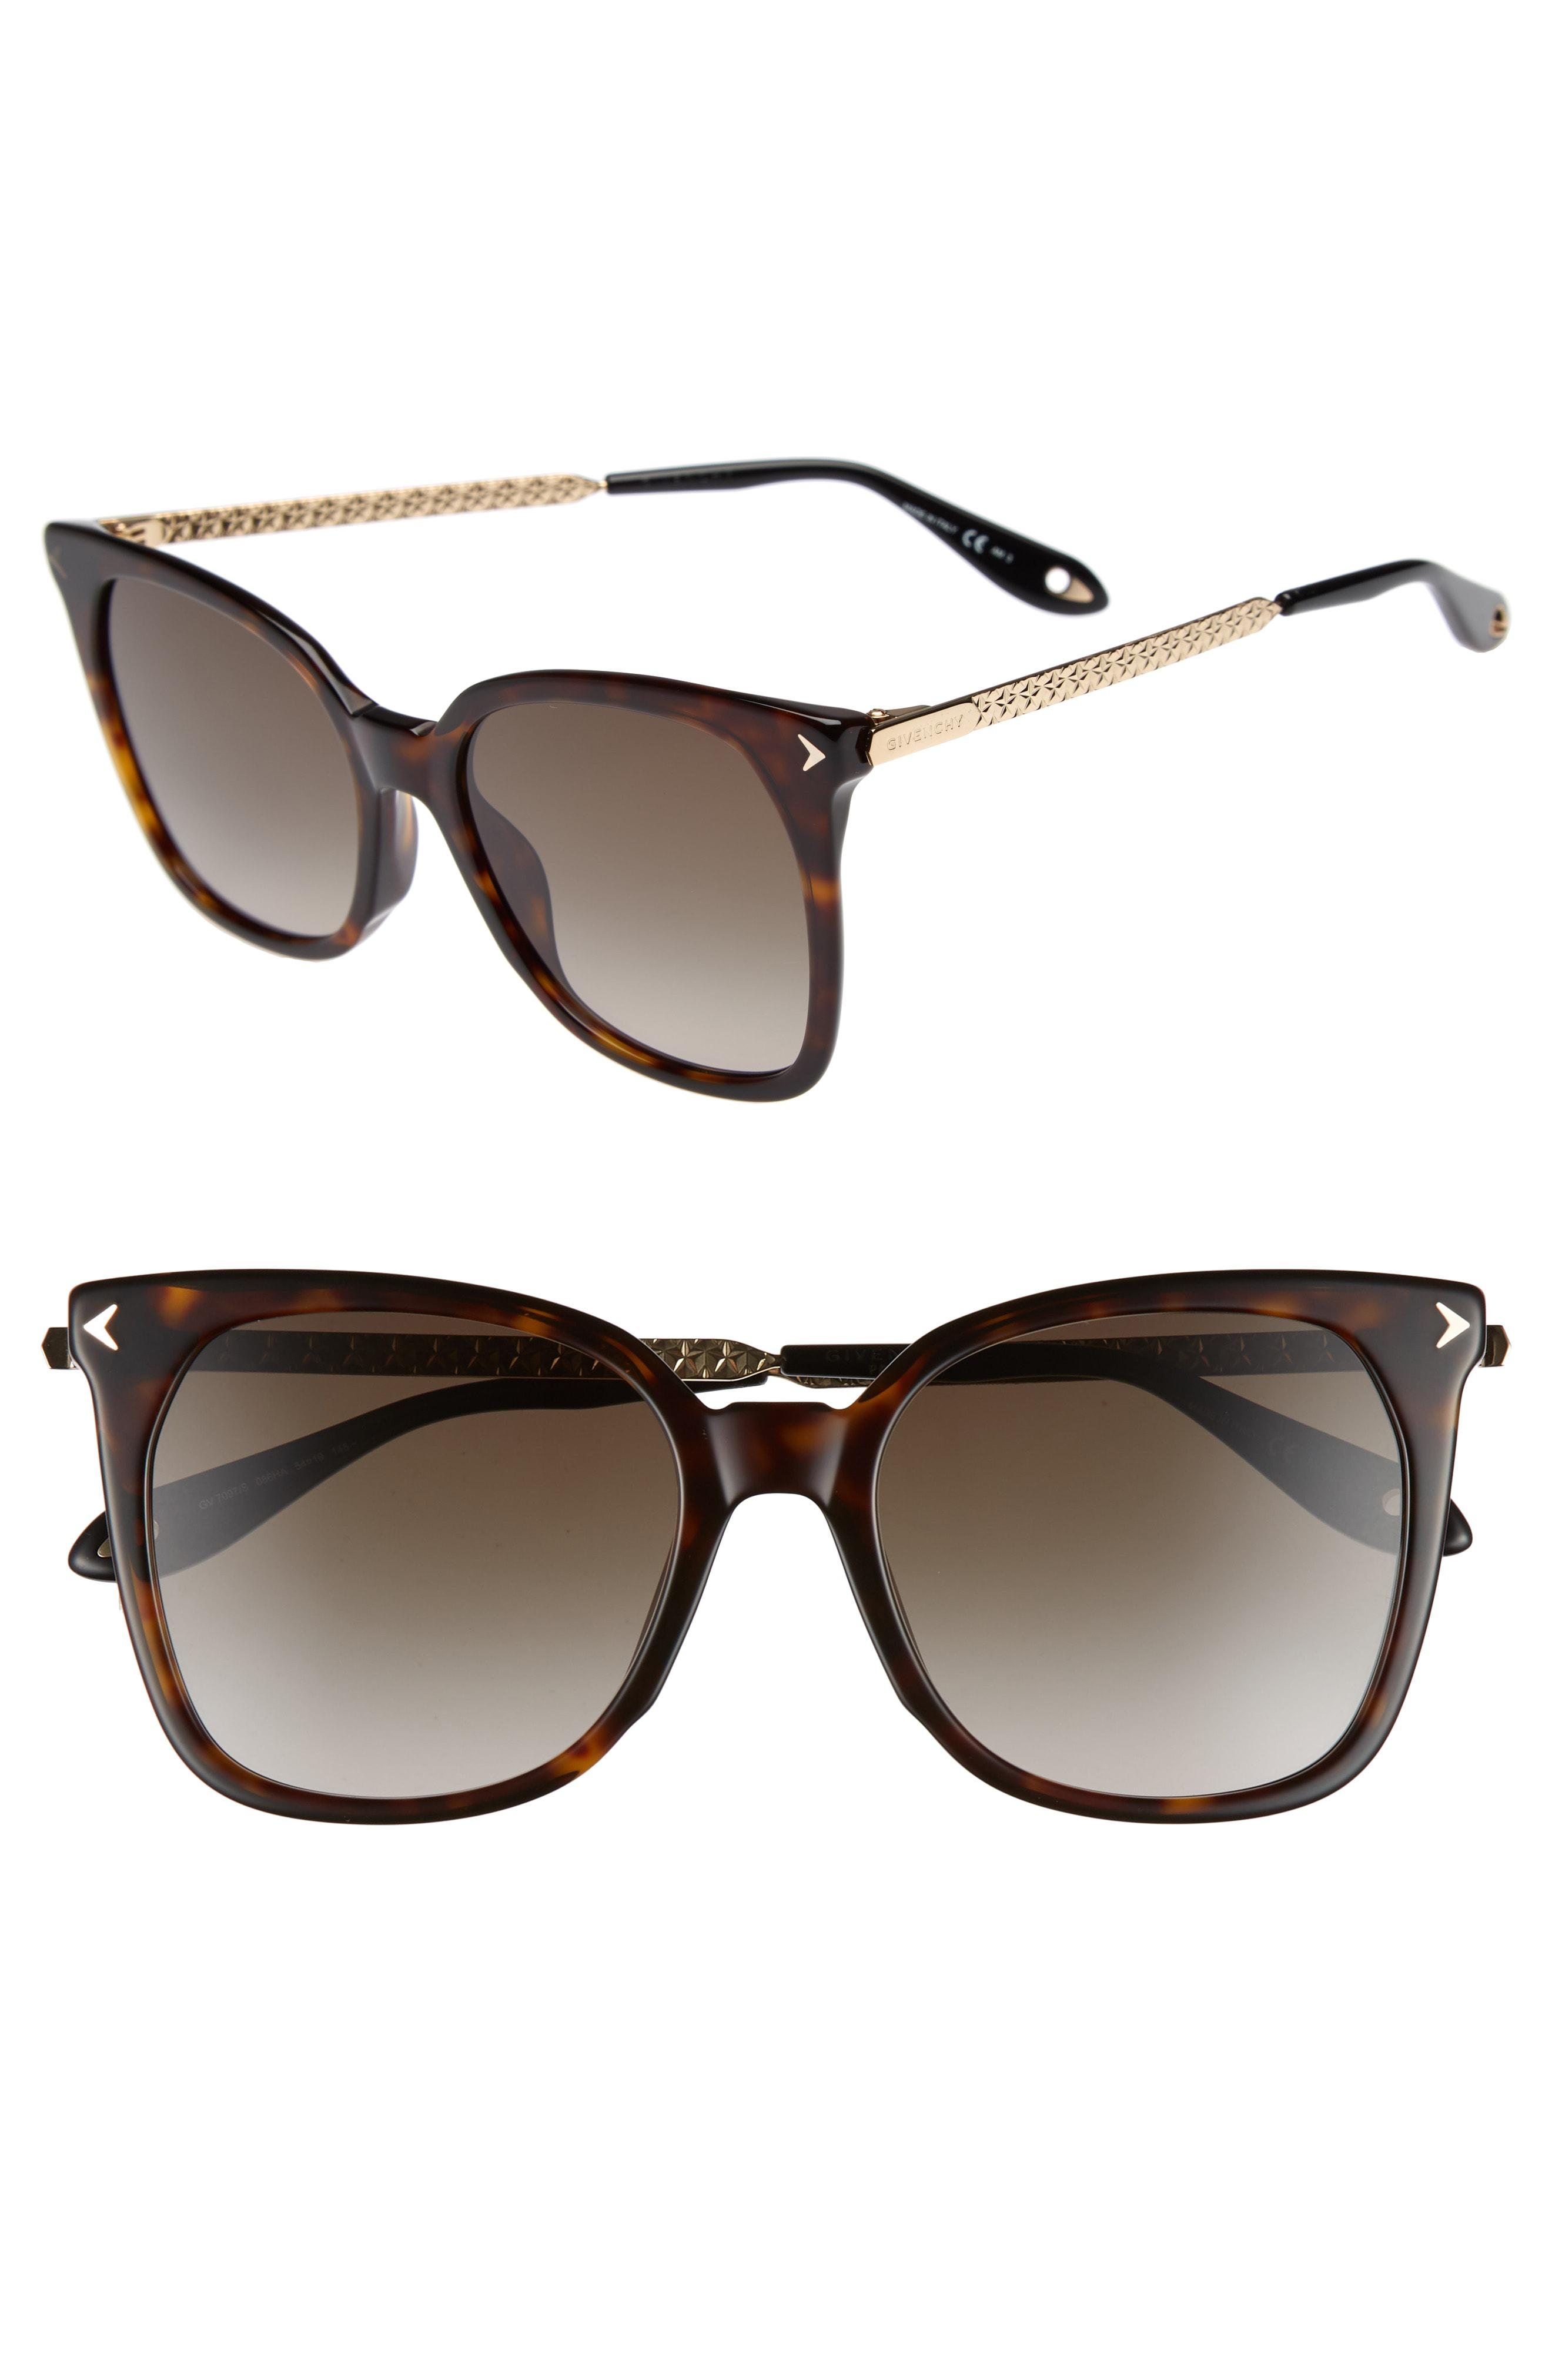 f9219d49f801 Lyst - Givenchy 54mm Square Sunglasses - Dark Havana in Brown